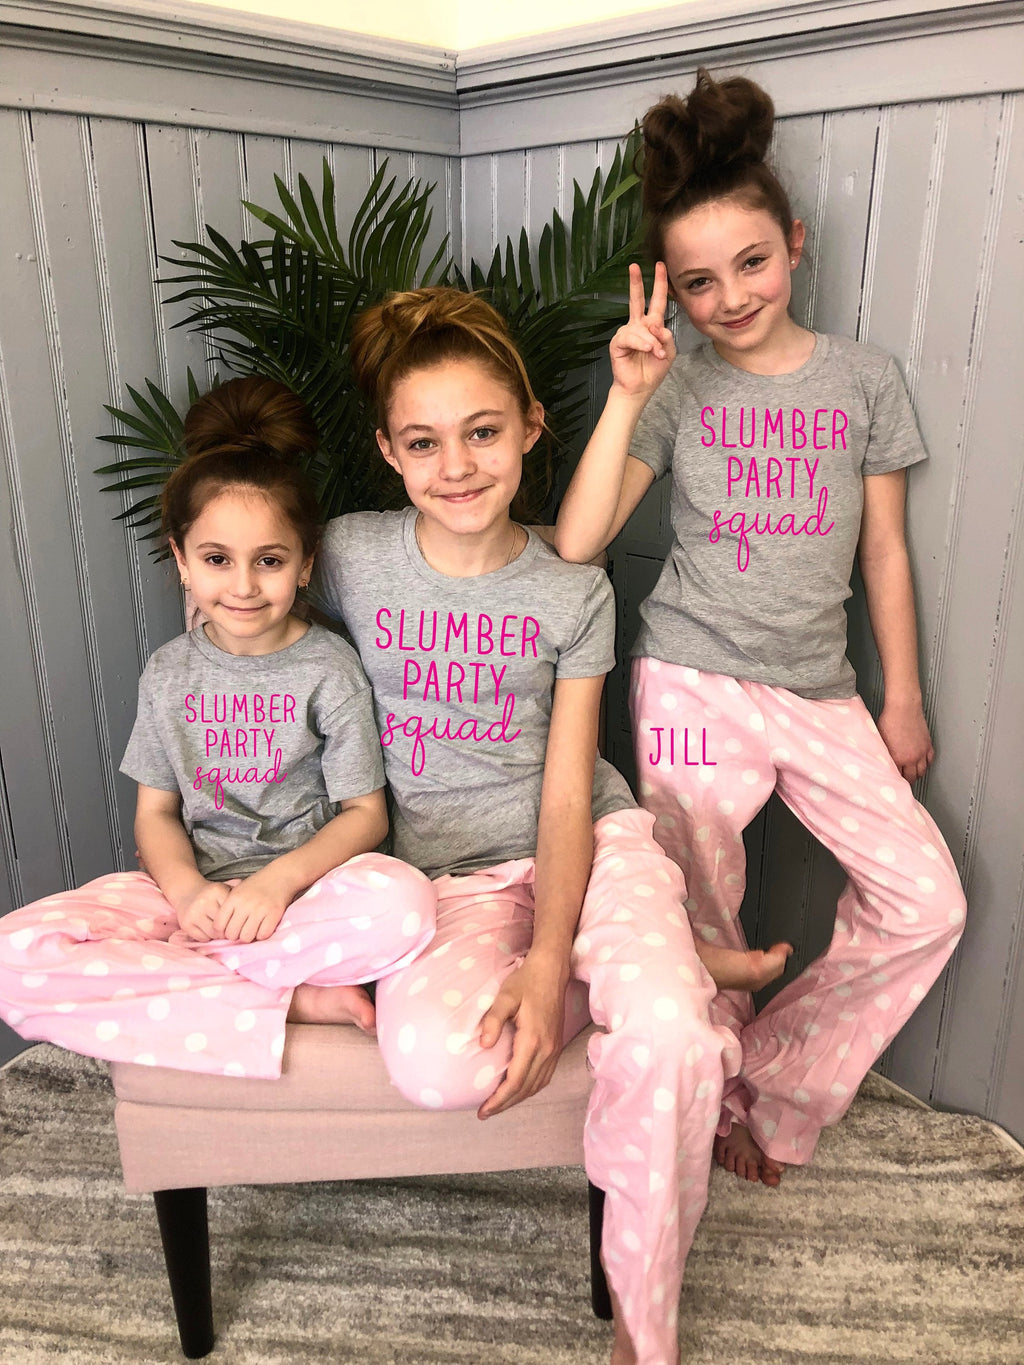 sleepover squad, slumber birthday party, teen bday shirt, birthday squad, personalized teenager pjs, cute tween pajama set,slumber party pjs